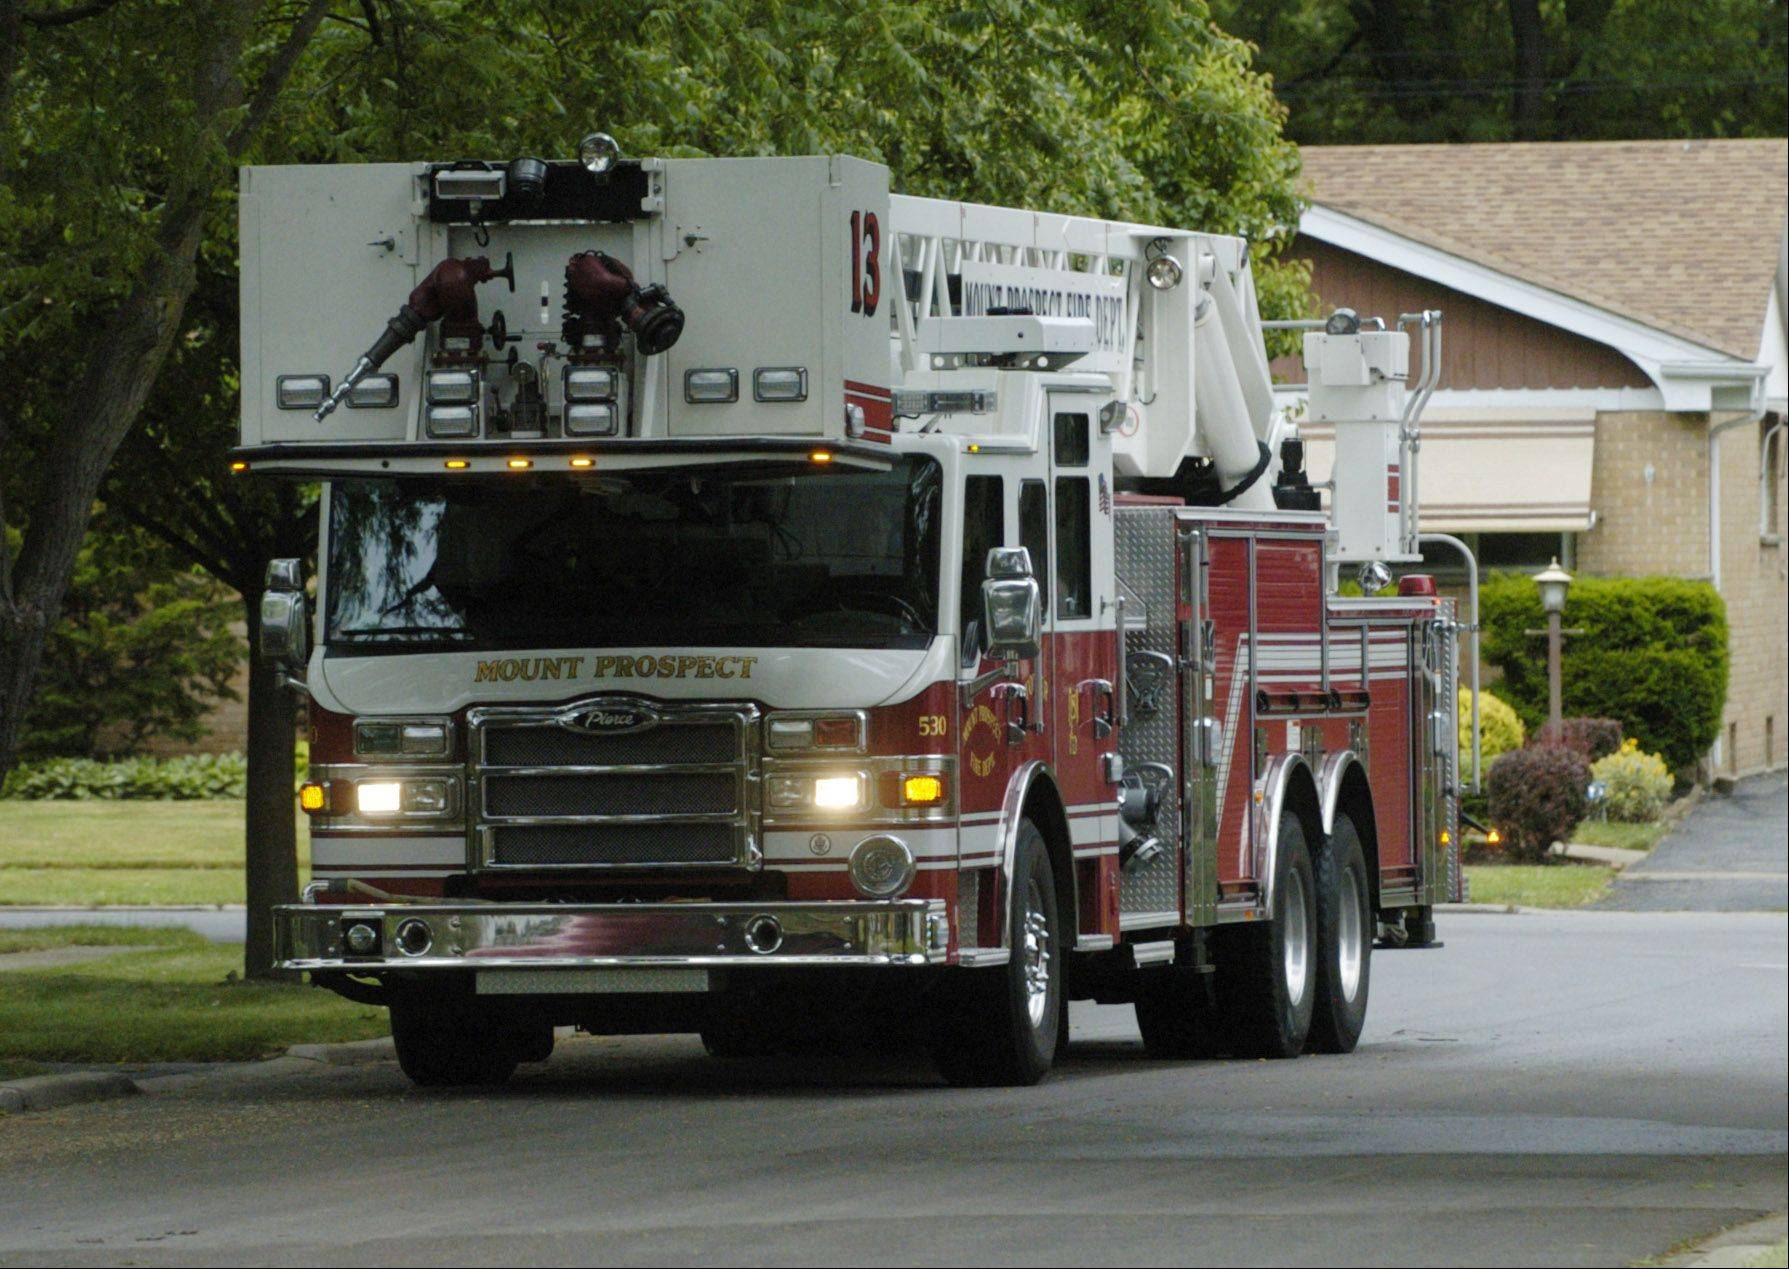 Mount Prospect�s ladder truck, Tower 13: Trustees said is the department�s policy of running the tower ladder on every call so as not to have to go back to the station to get it is concerning.